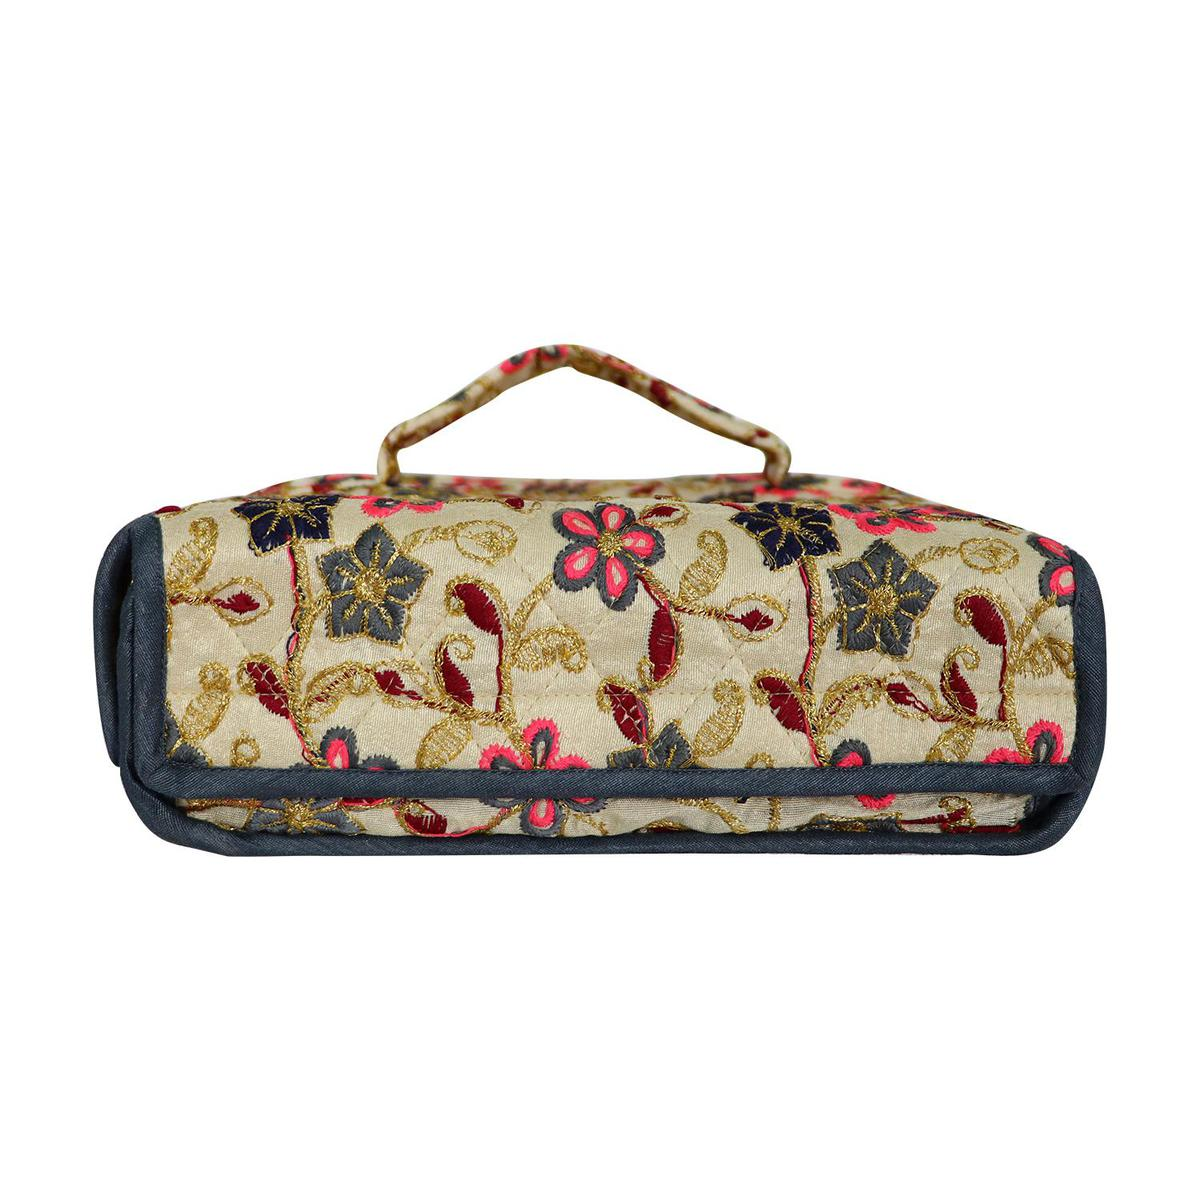 Lelys - Bridal Makeup And Toiletries Pouch